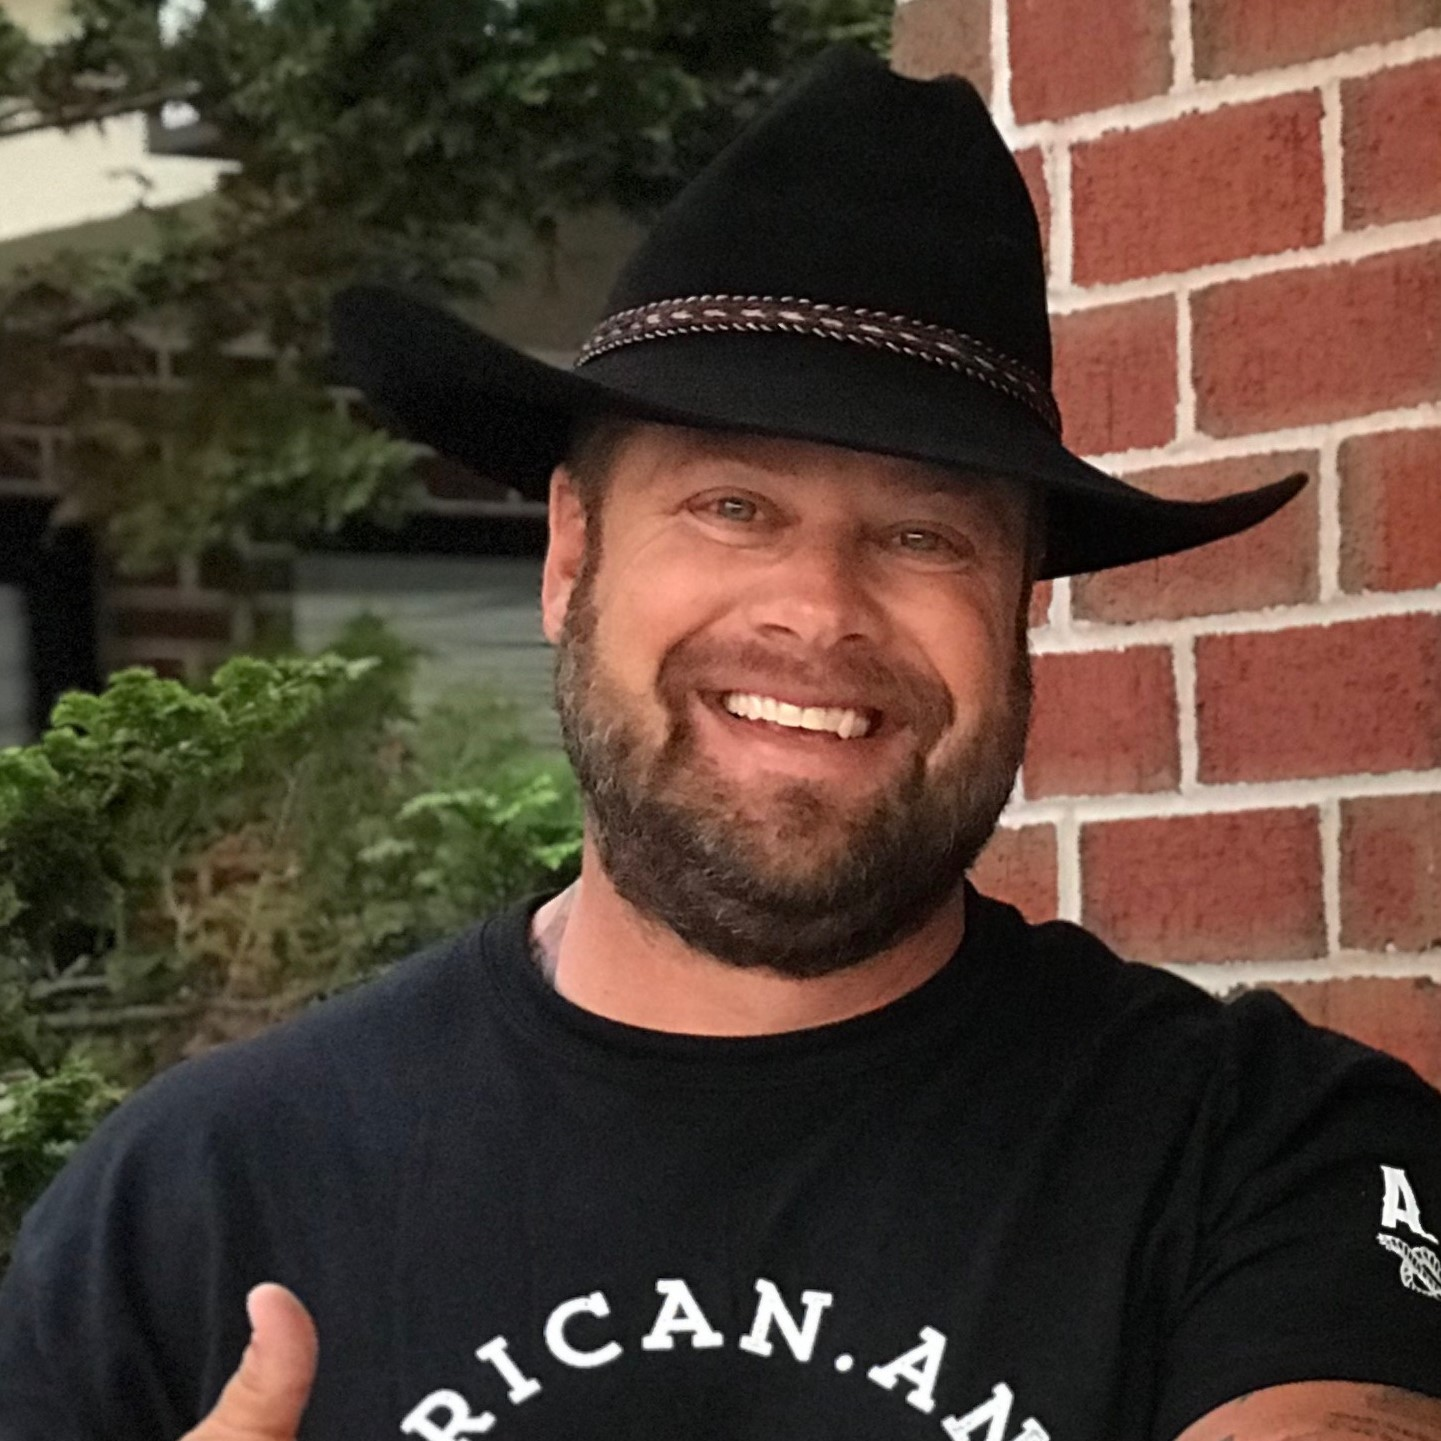 4c4aba24a17c24 Jason Jean is the Founder of Tattered Beans /Ep2269